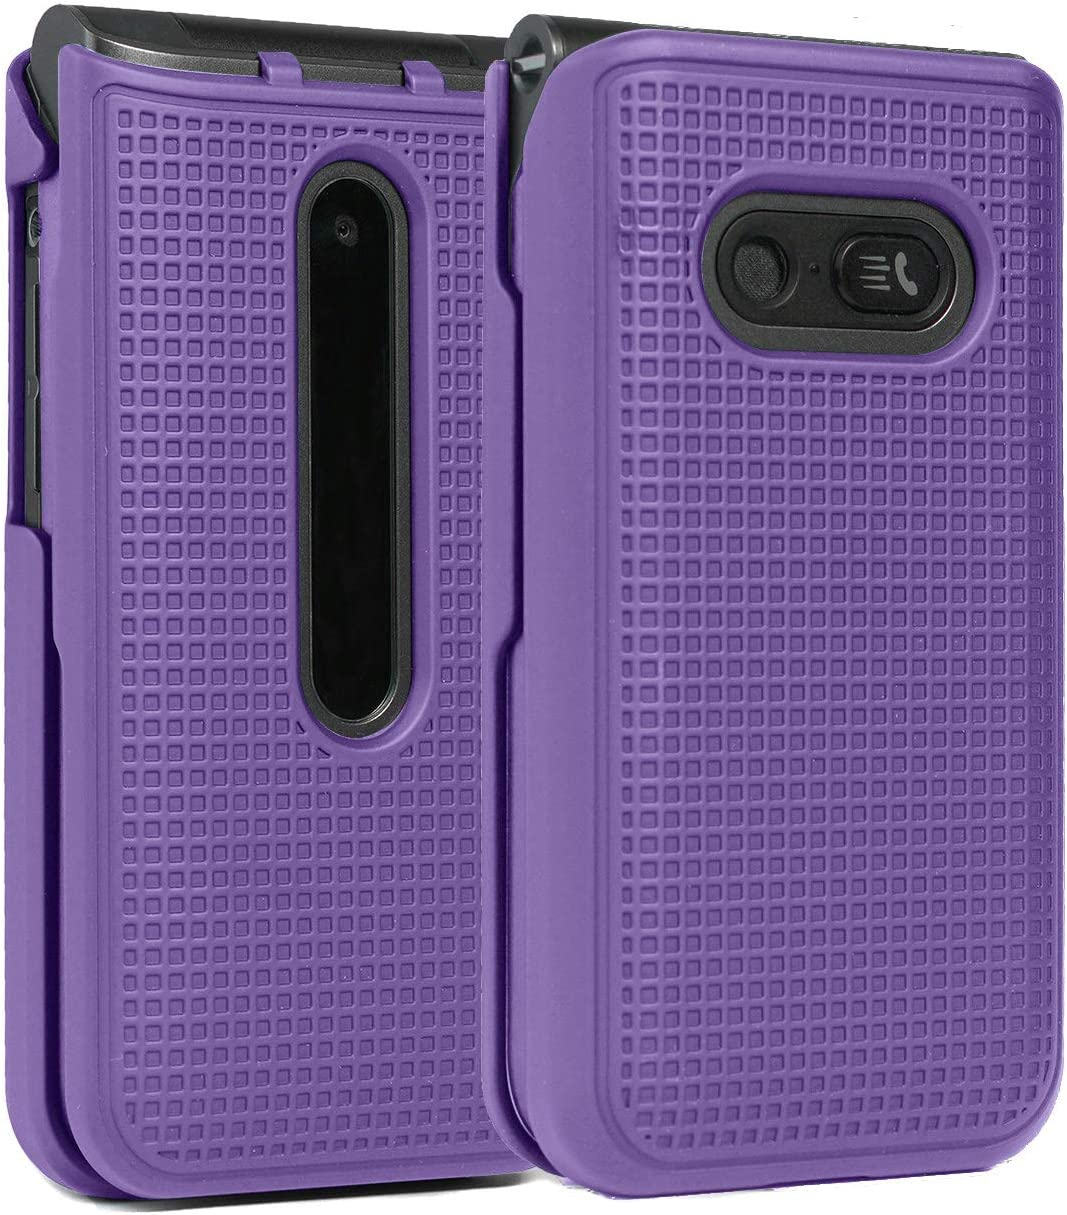 Case for LG Wine 2 LTE, Nakedcellphone [Purple] Protective Snap-On Hard Shell Cover [Grid Texture] for The LG Wine 2 LTE Flip Phone (LM-Y120) from US Cellular